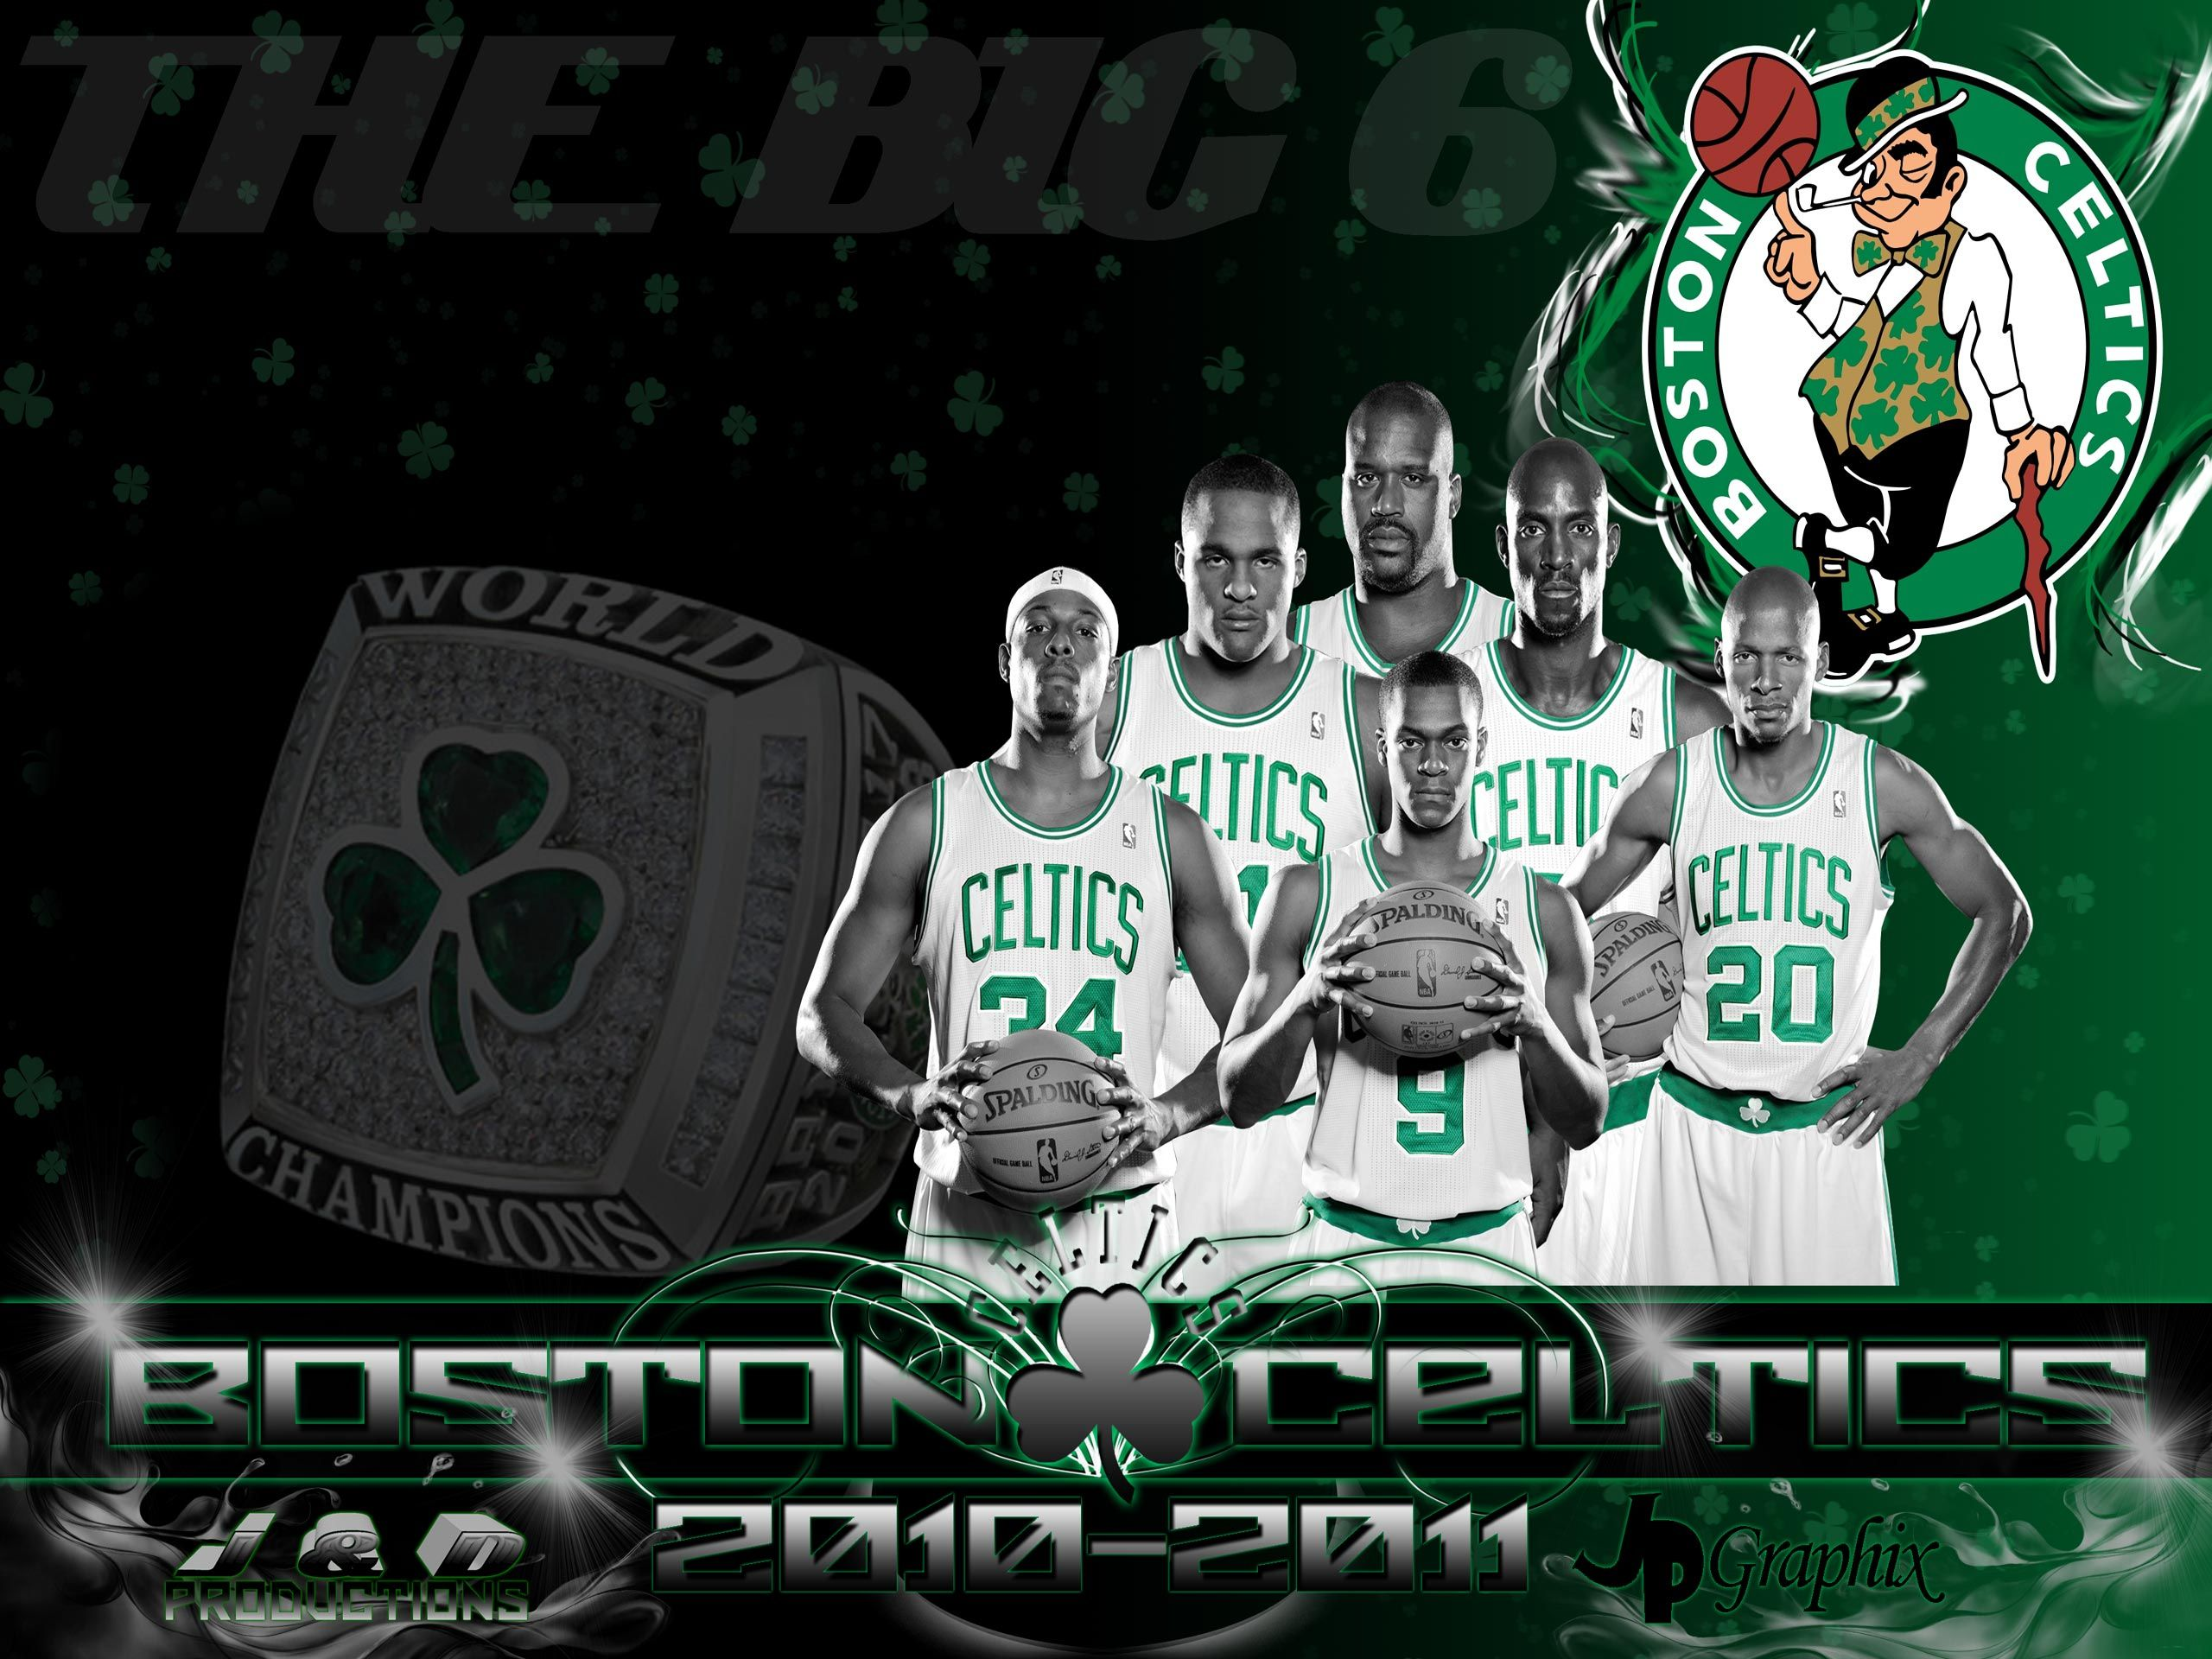 Boston Celtics Wallpaper For Iphone Best Wallpaper Hd Boston Celtics Wallpaper Boston Celtics Basketball Boston Celtics